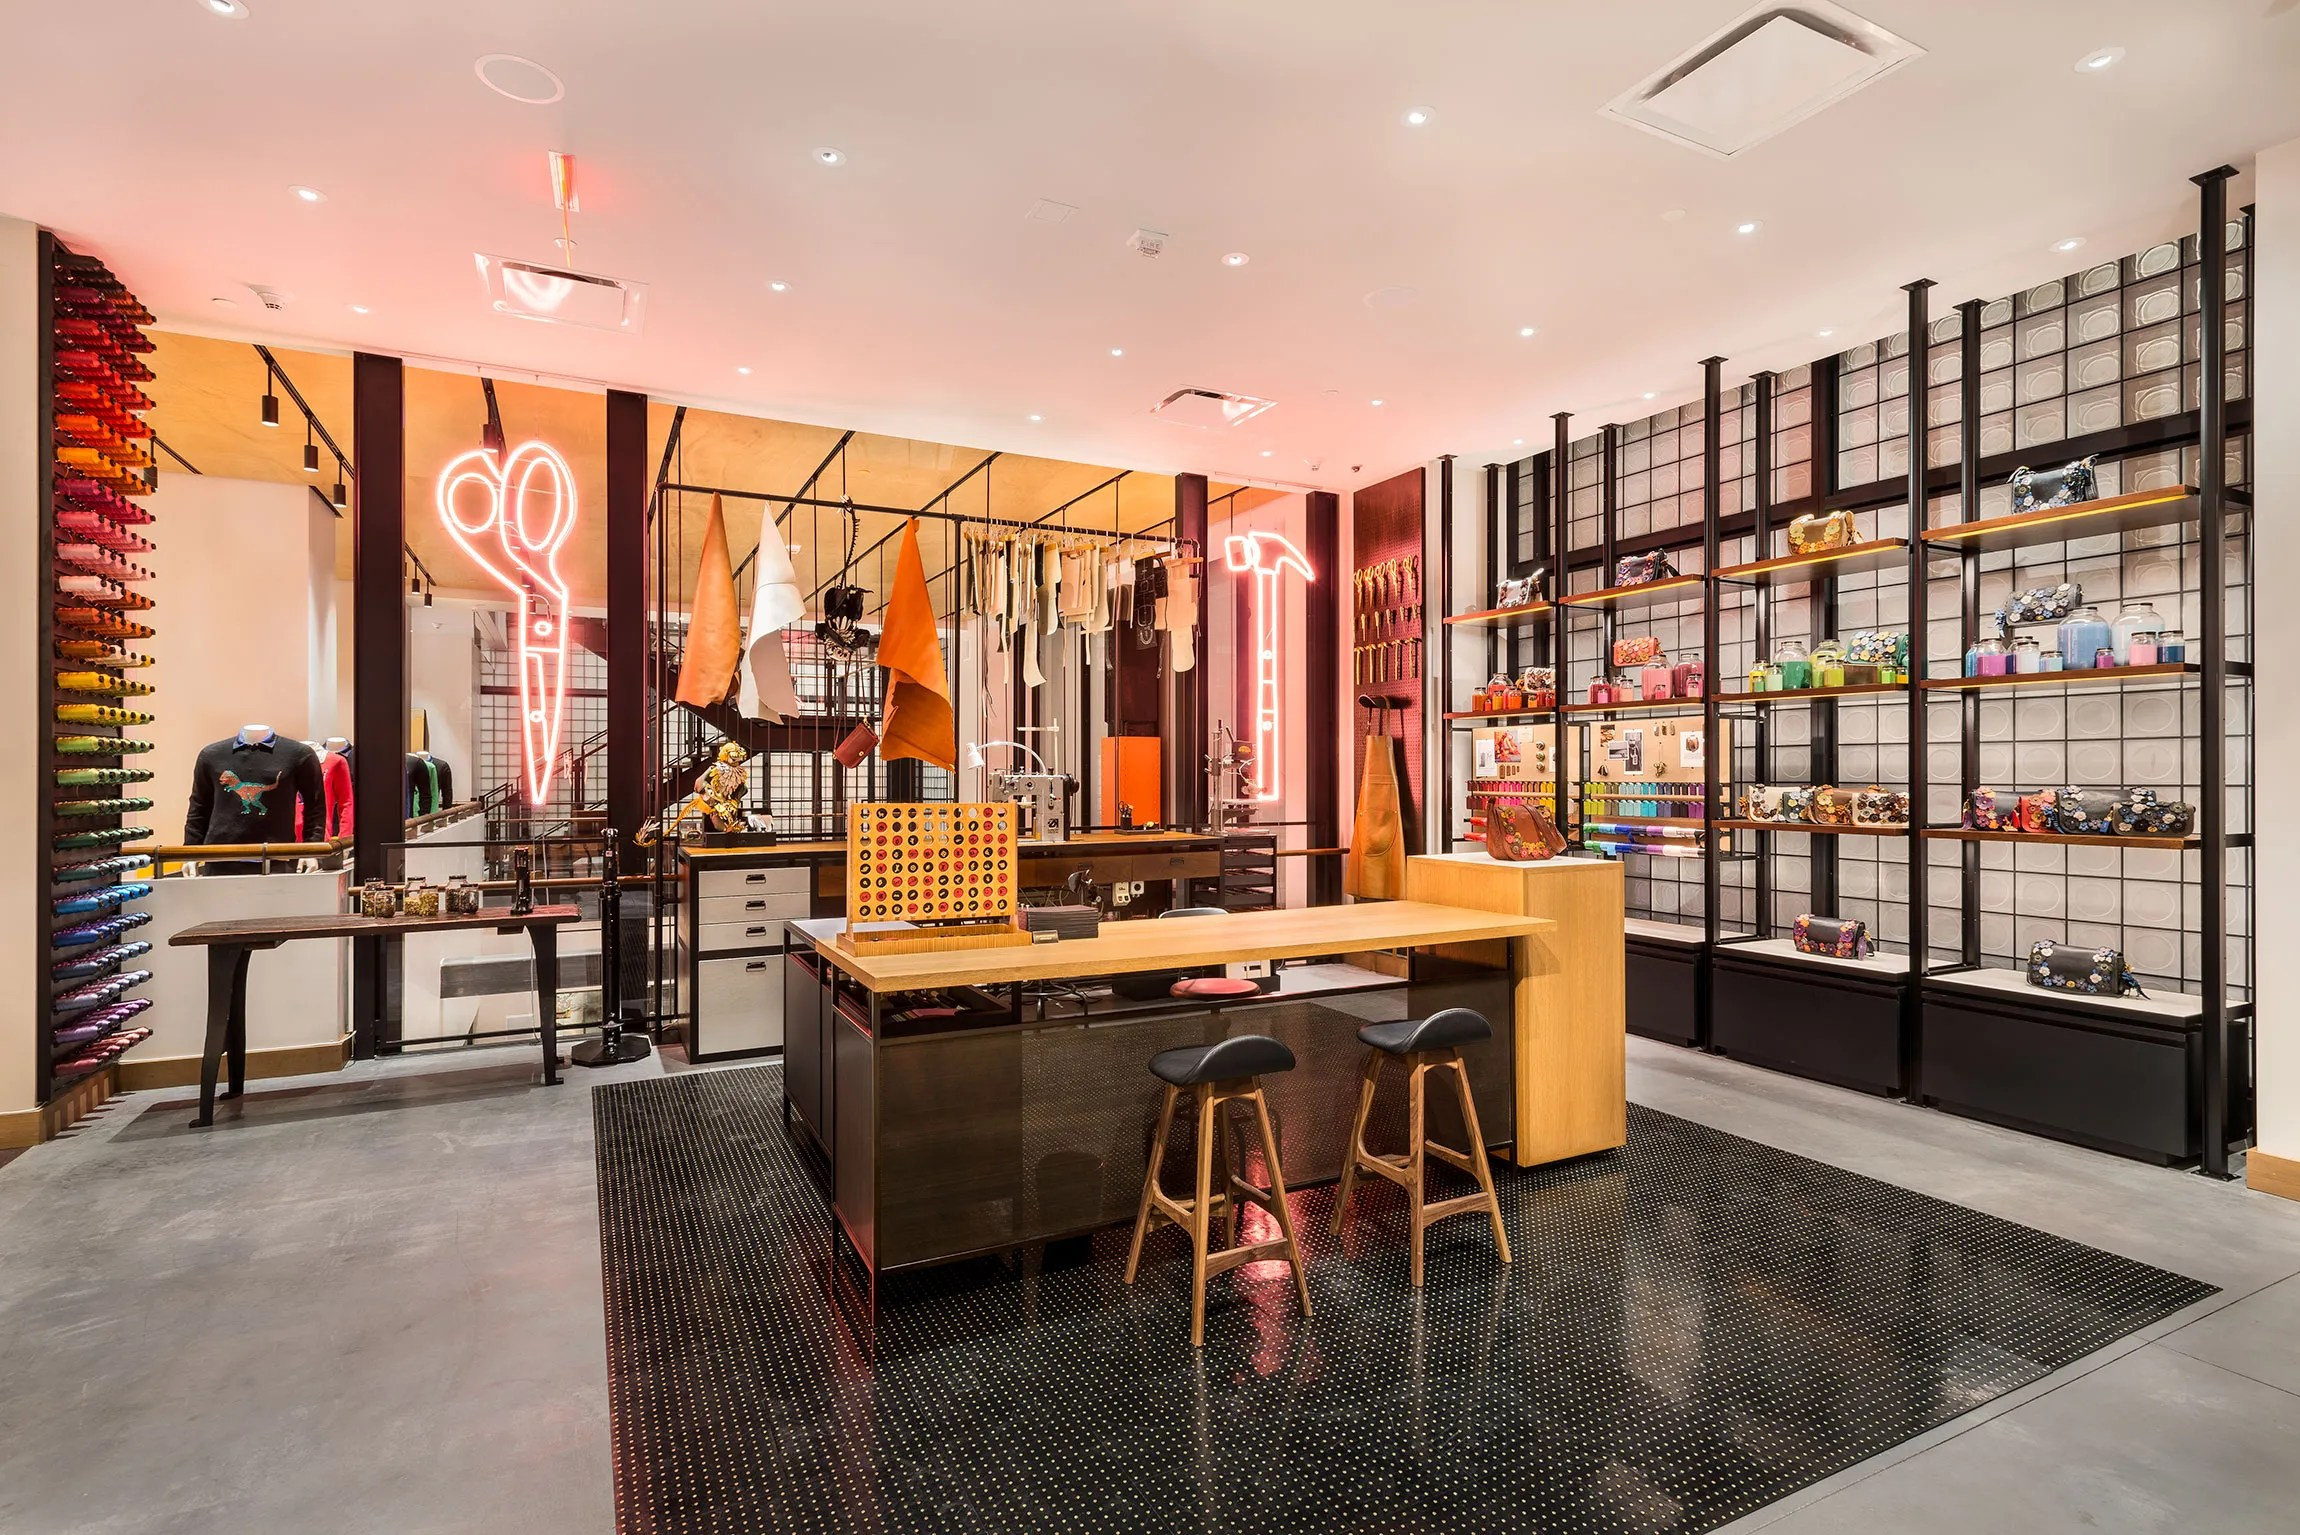 Coachs New Store Is An Ode To New York And The American